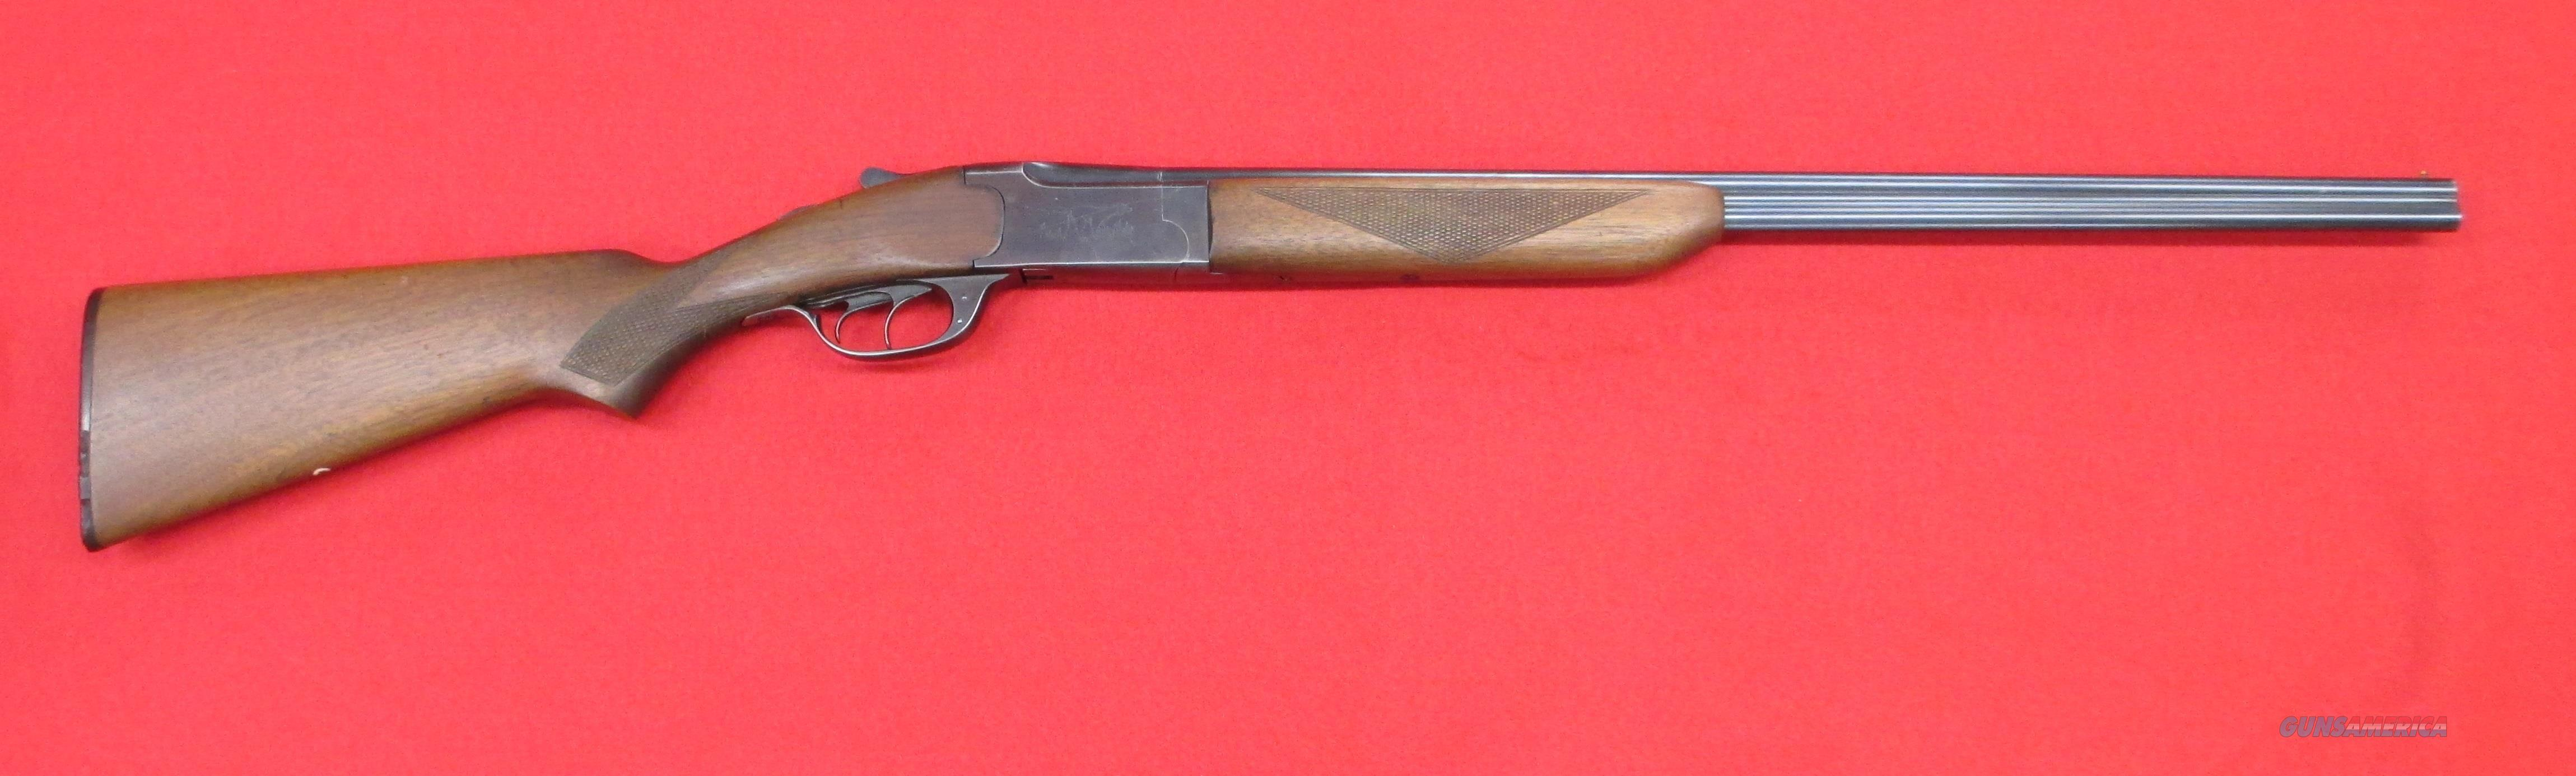 Marlin Model 90, 410ga  Guns > Shotguns > Marlin Shotguns